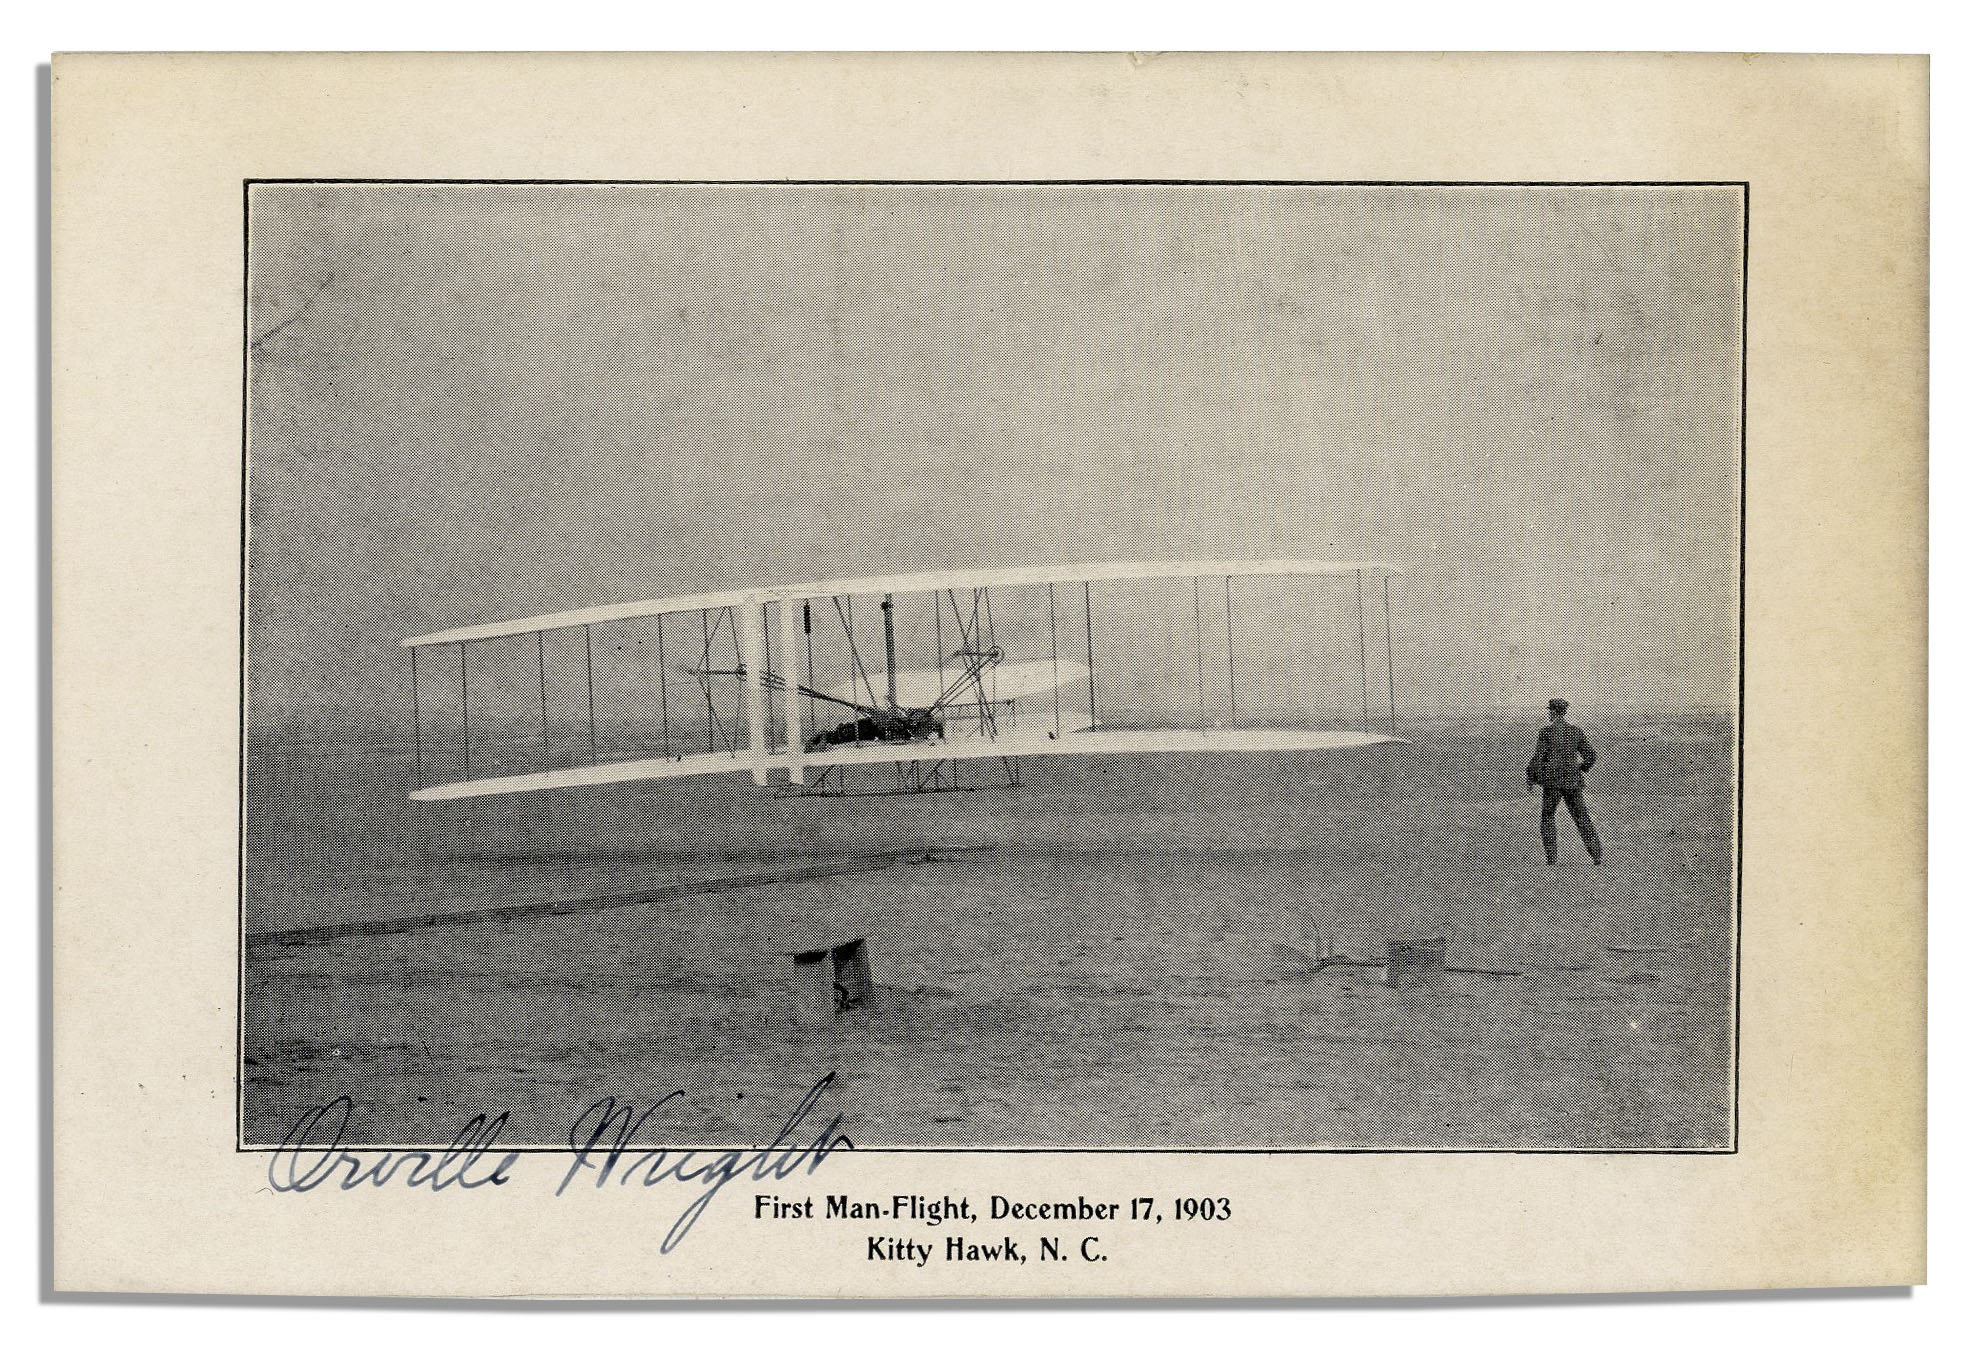 First Flight Kitty Hawk 1903 throughout lot detail - orville wright signed photo of the wright brothers